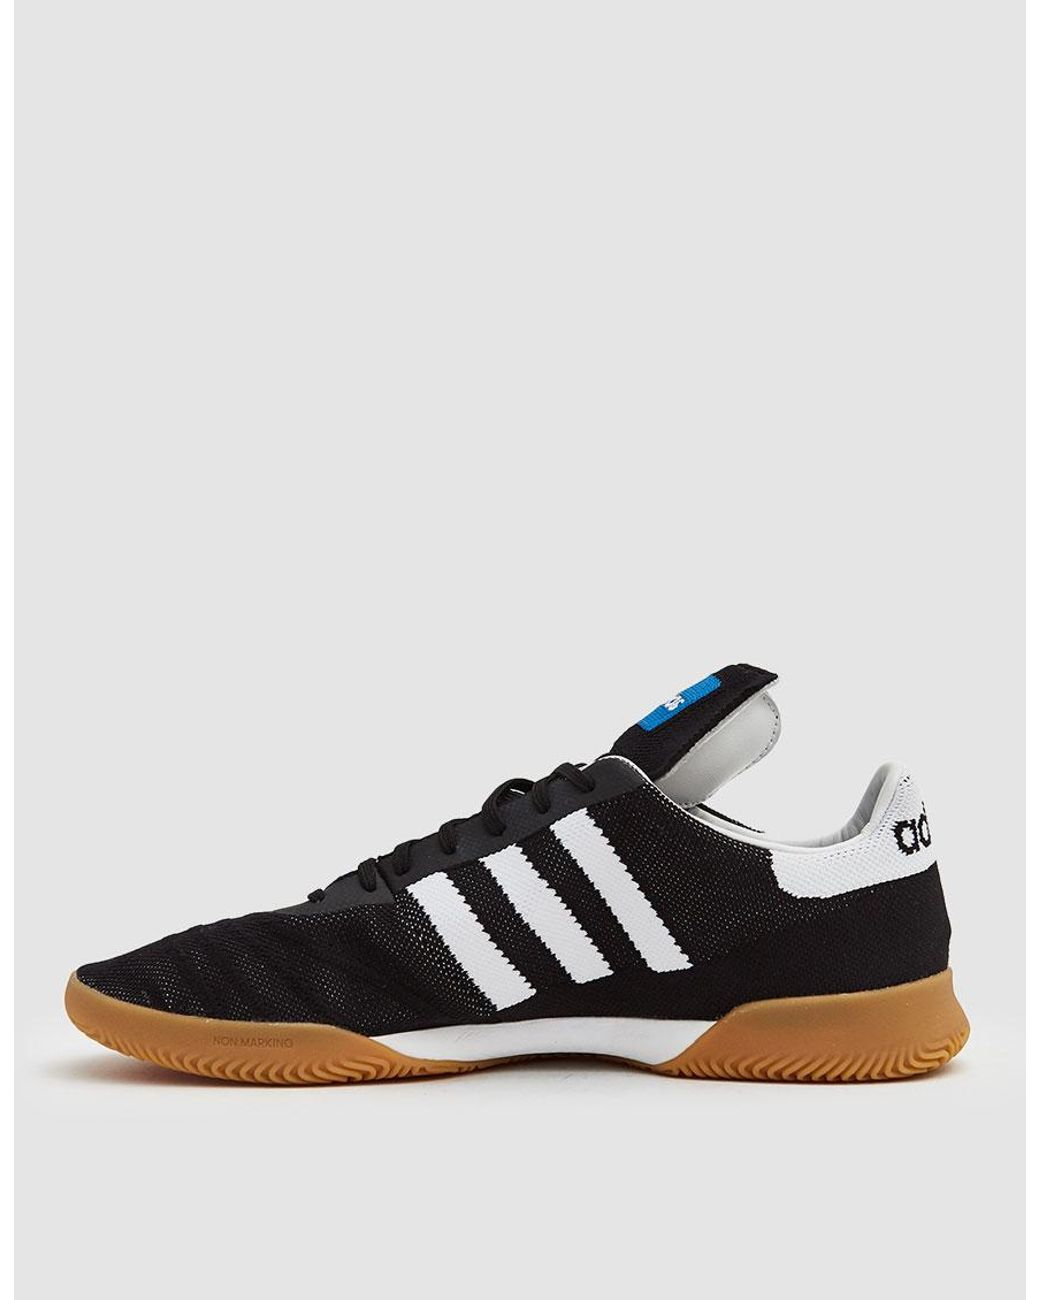 2ece9efe adidas Copa Mundial 70th Year Turf Shoes in Black for Men - Lyst